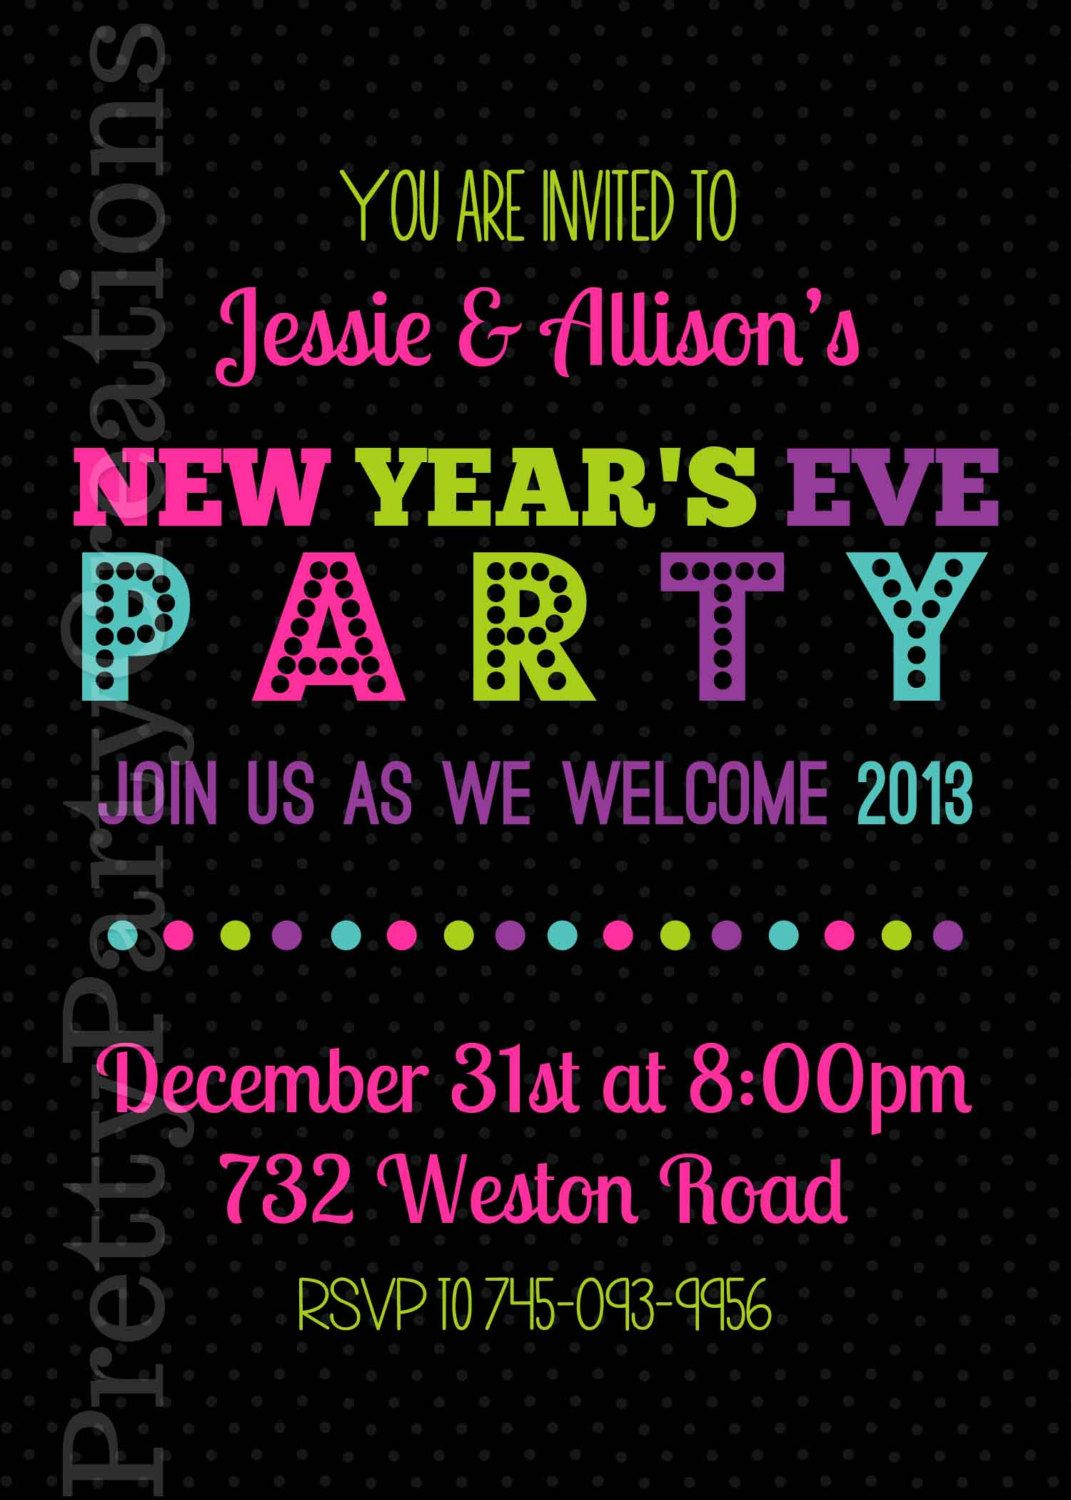 New Years Eve Party Invitation You Print By Prettypartycreations New Years Eve Party Party Invitations Invitations Party